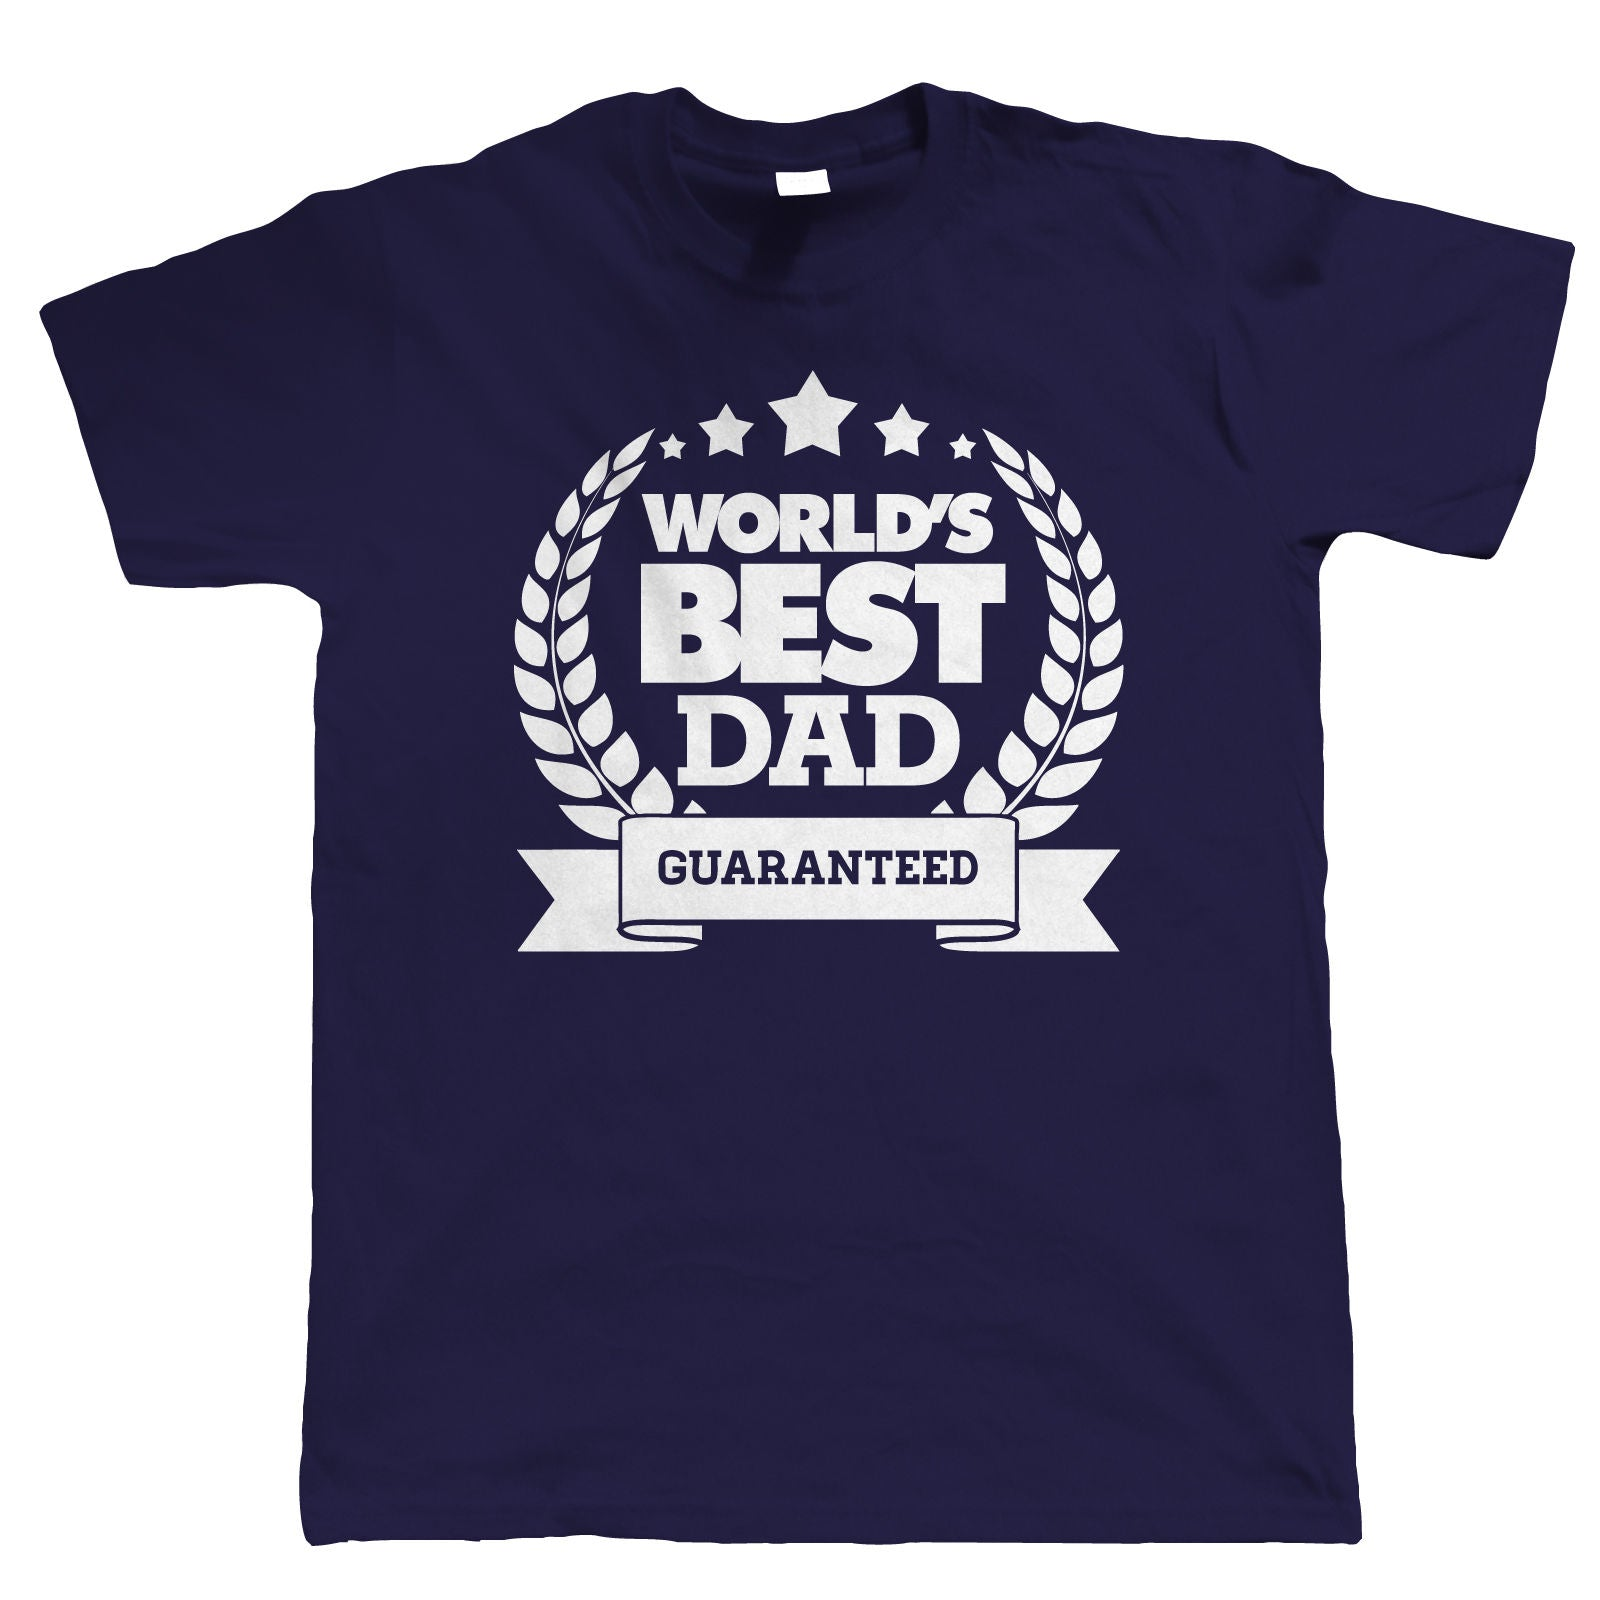 World's Best Dad, T Shirt Christmas Gift For Dad